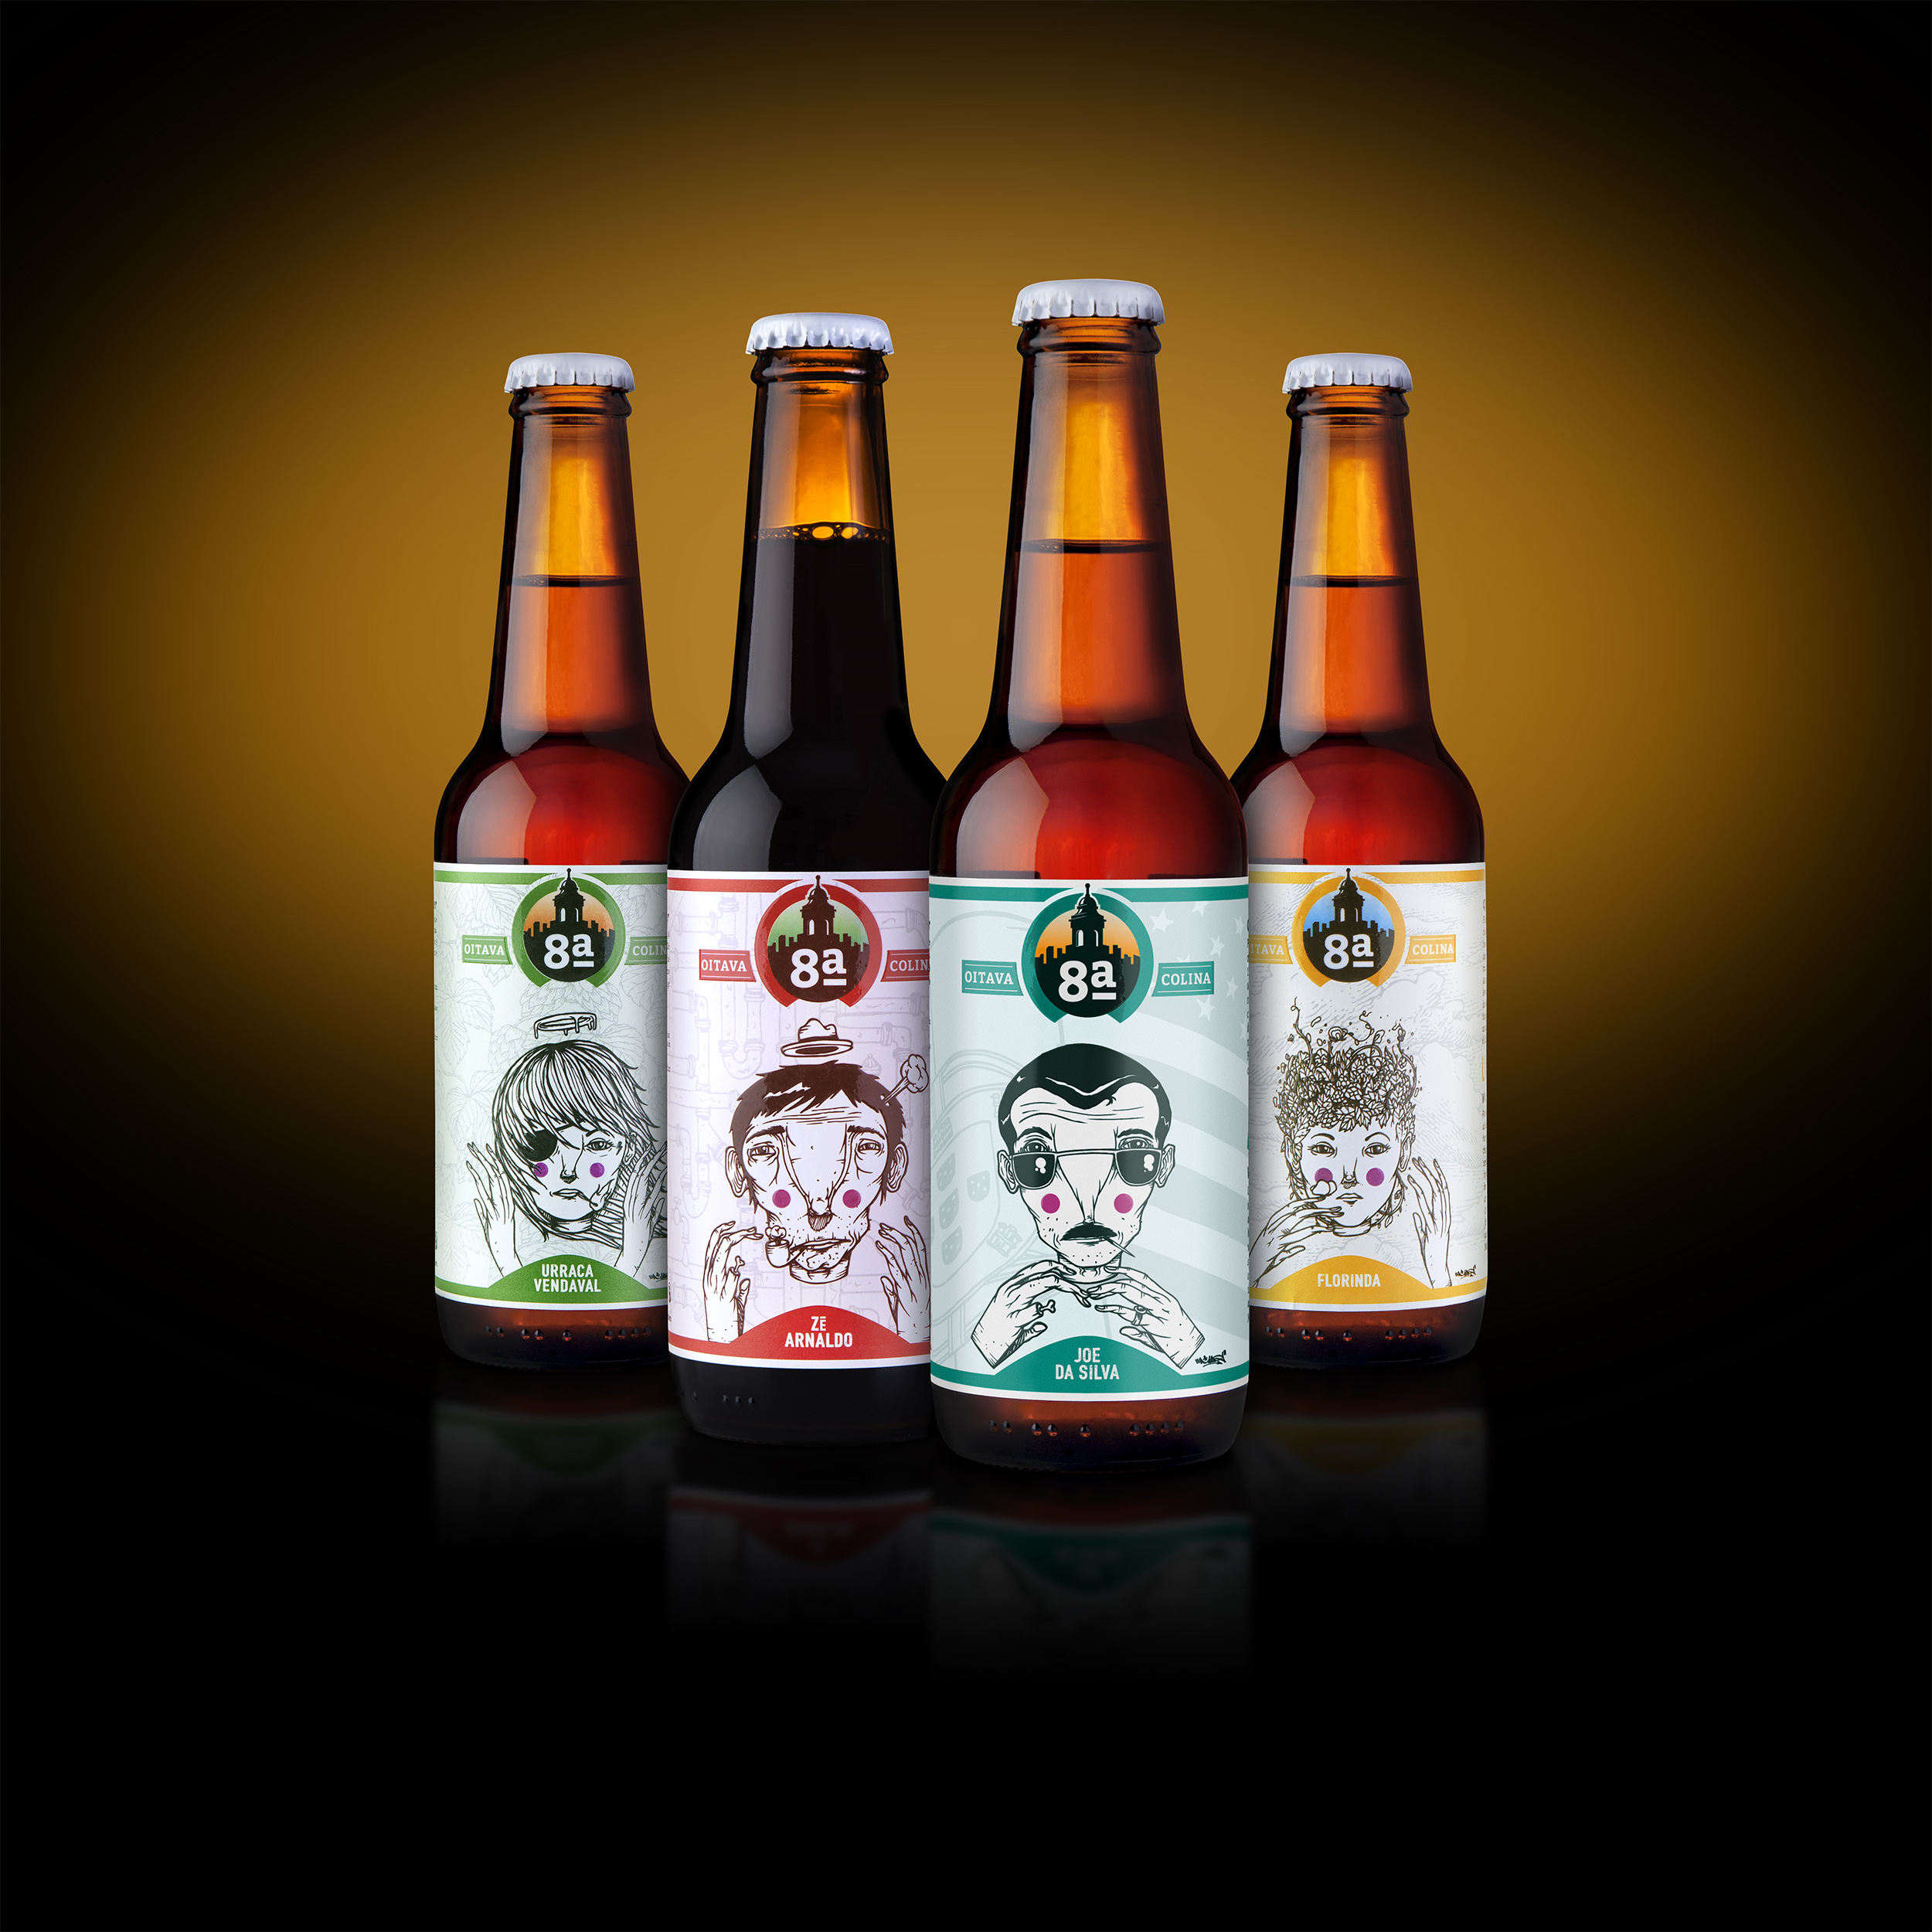 Packaging Design and Illustration for Micro-Brewery from a Lisbon Neighbourhood Craft Beer